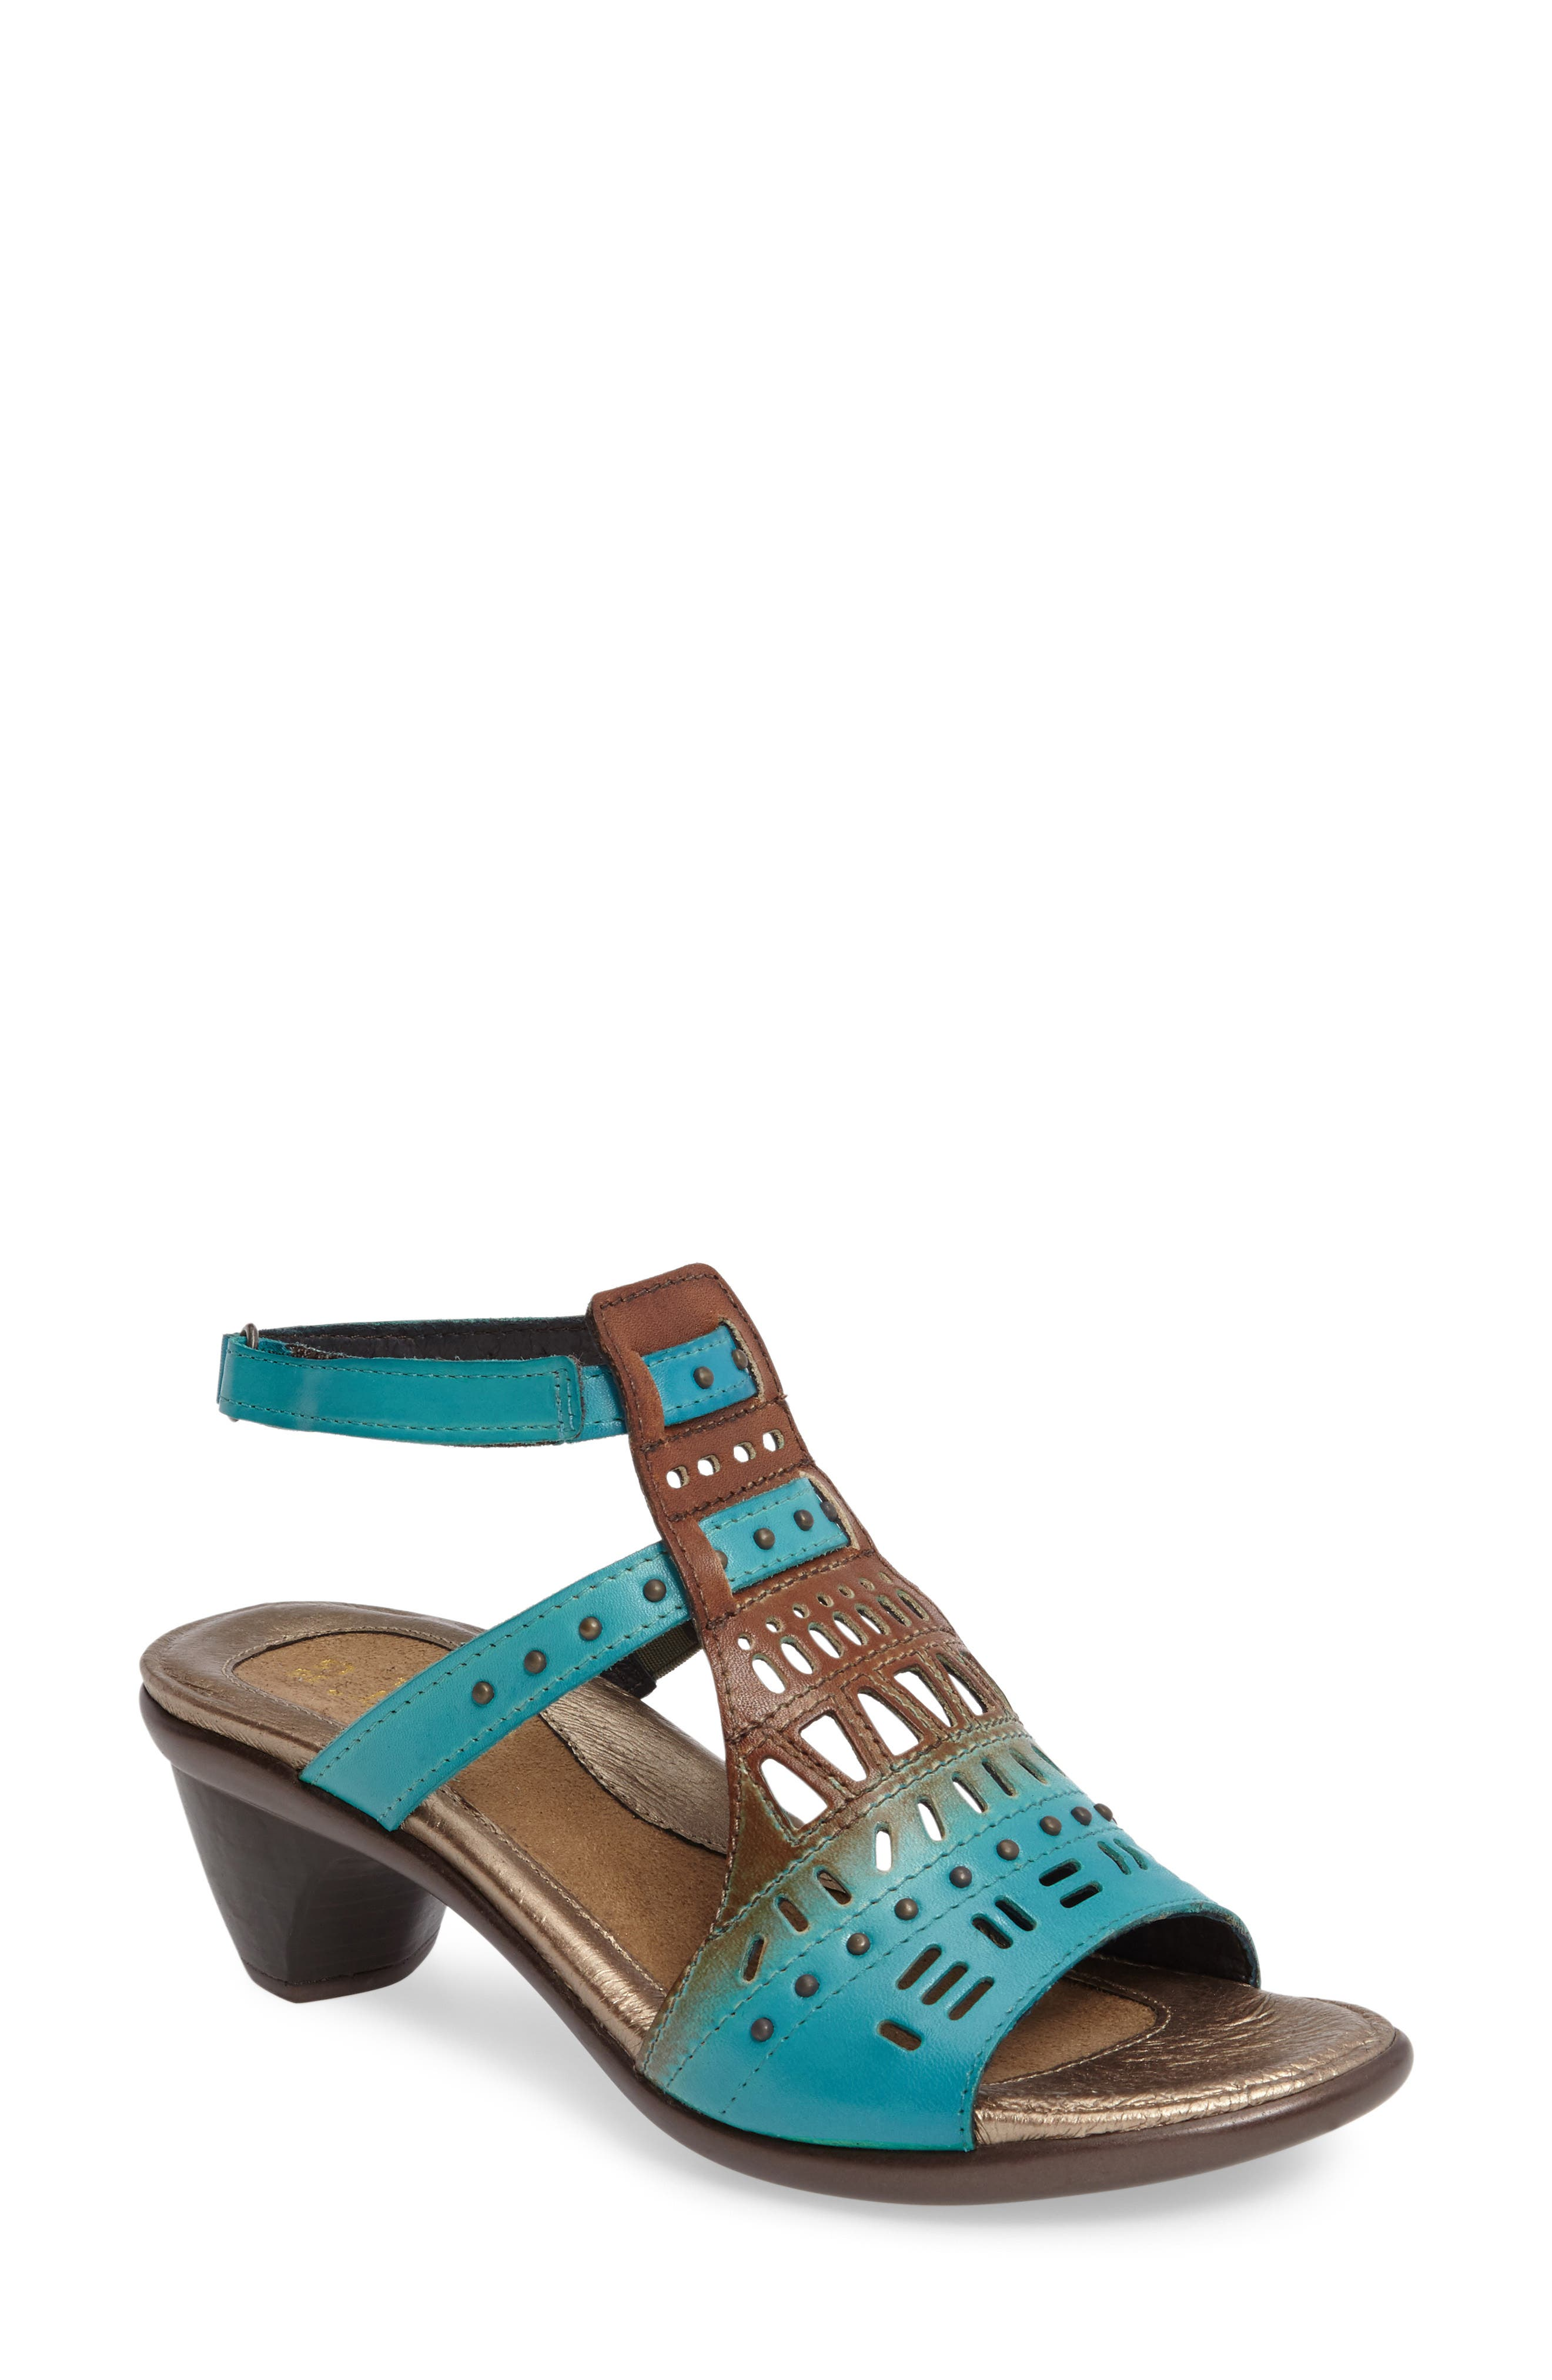 'Vogue' Sandal,                             Main thumbnail 1, color,                             TEAL BROWN LEATHER